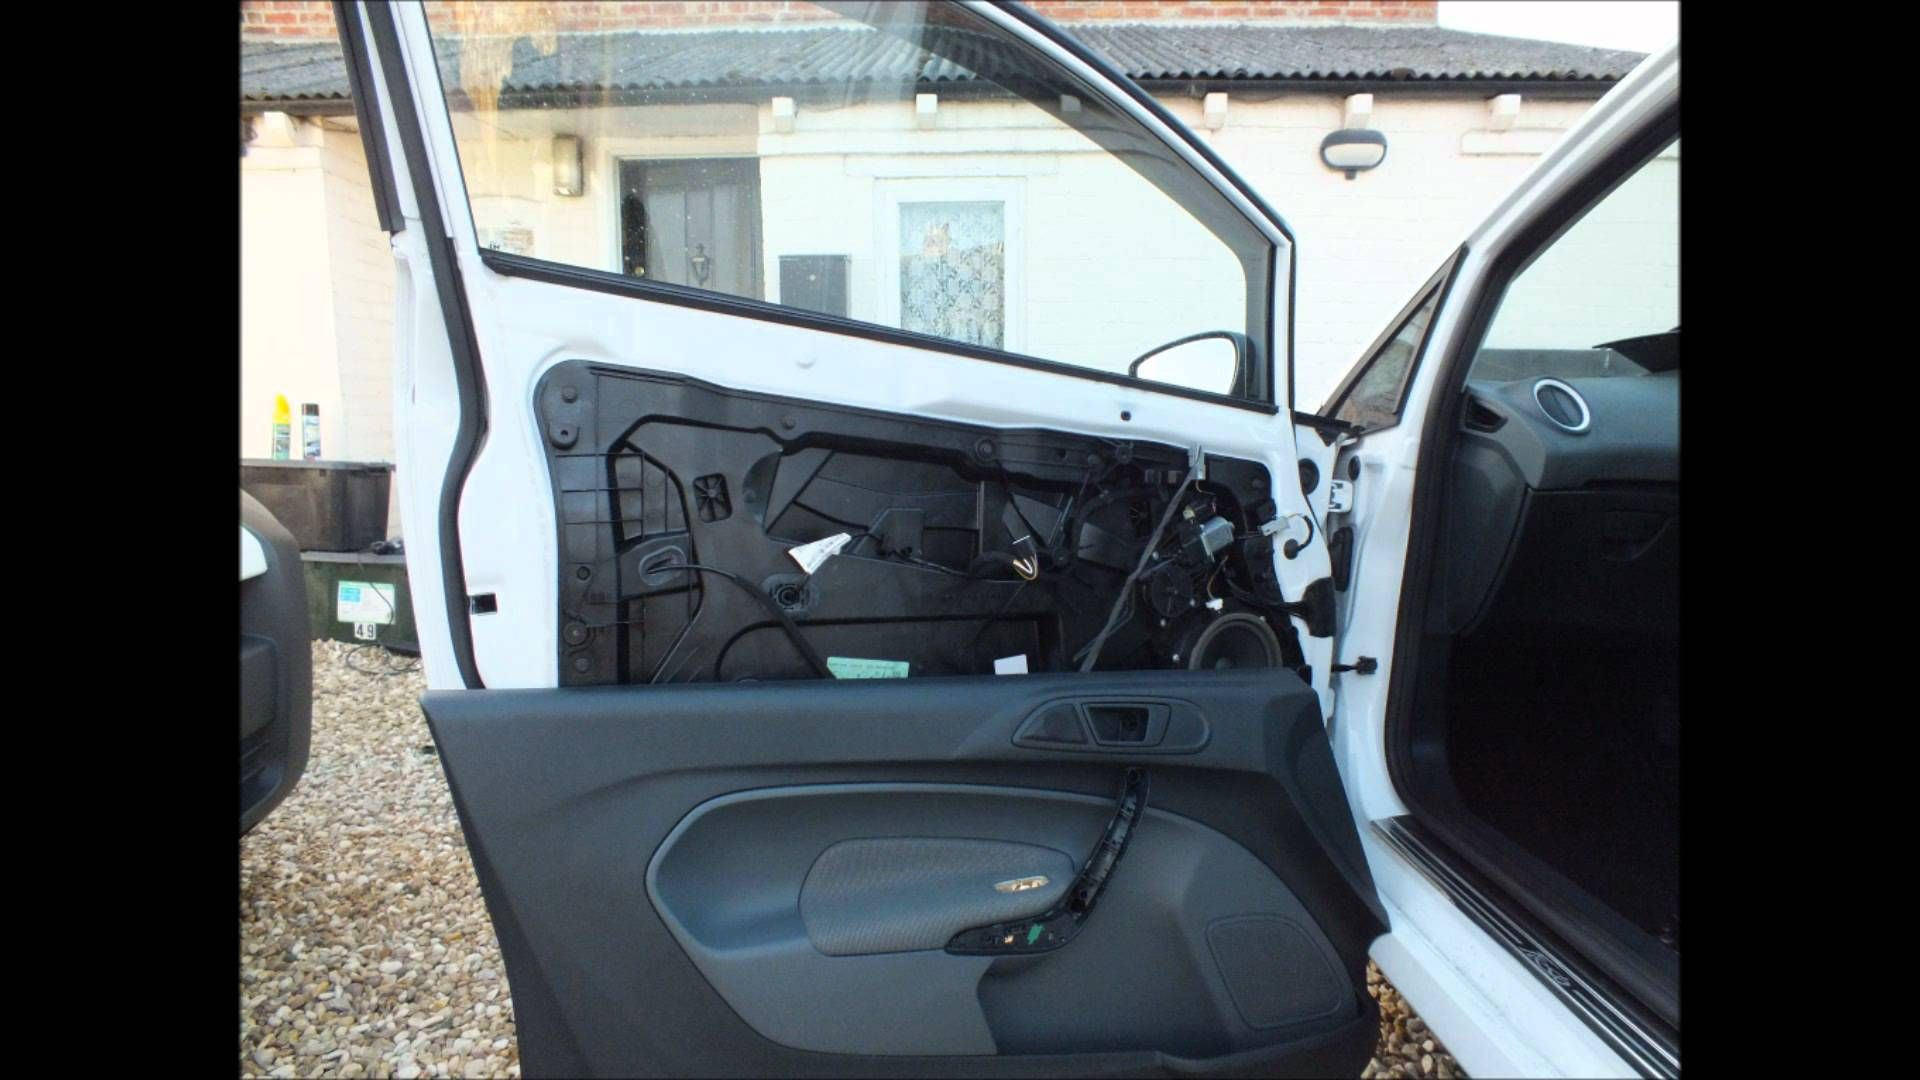 Ford Fiesta Mk7 2008 Present Door Card Removal Powerfold Mirror Fitting Guide Ford Fiesta Ford Ford Edge